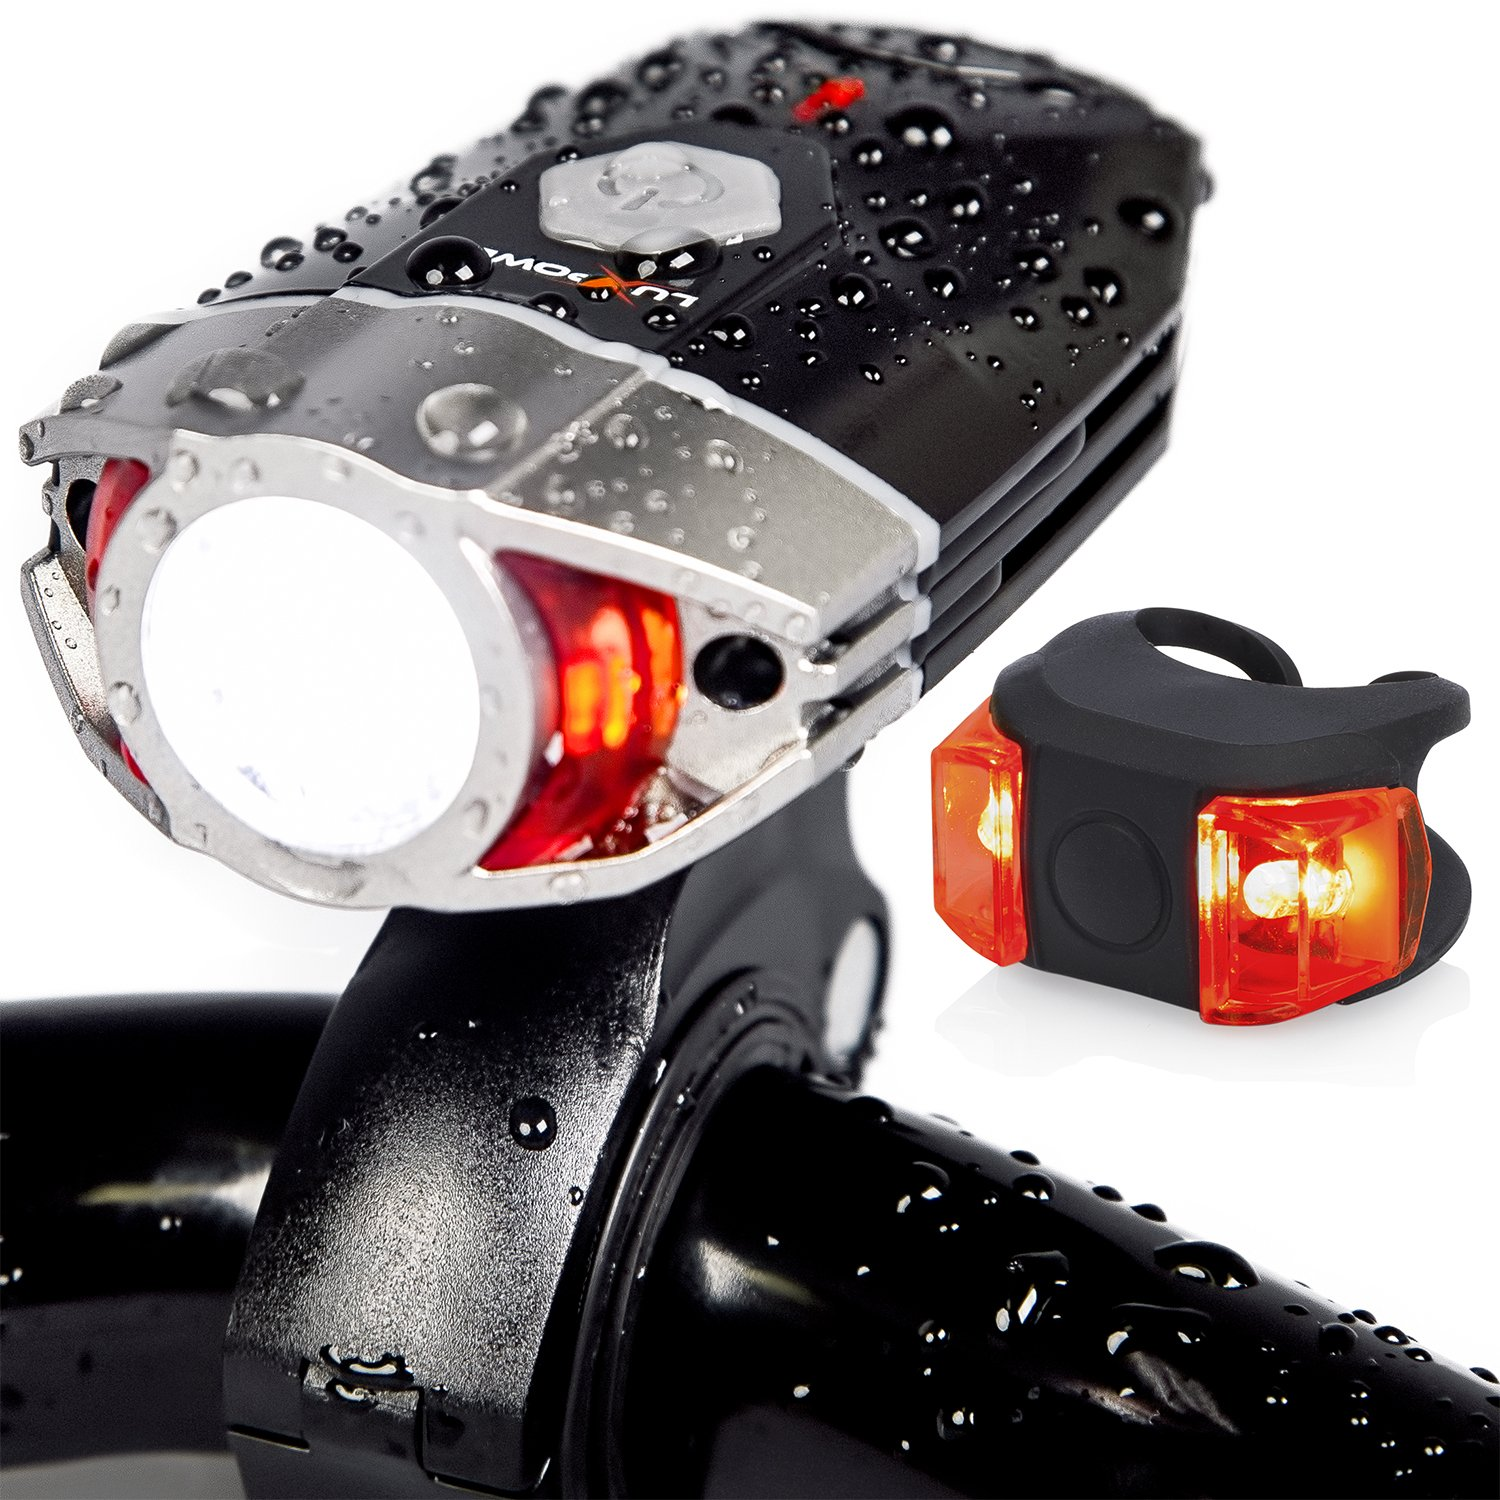 large led lighting download wid saferide ims c saferidesaferide image p lights bike en gb